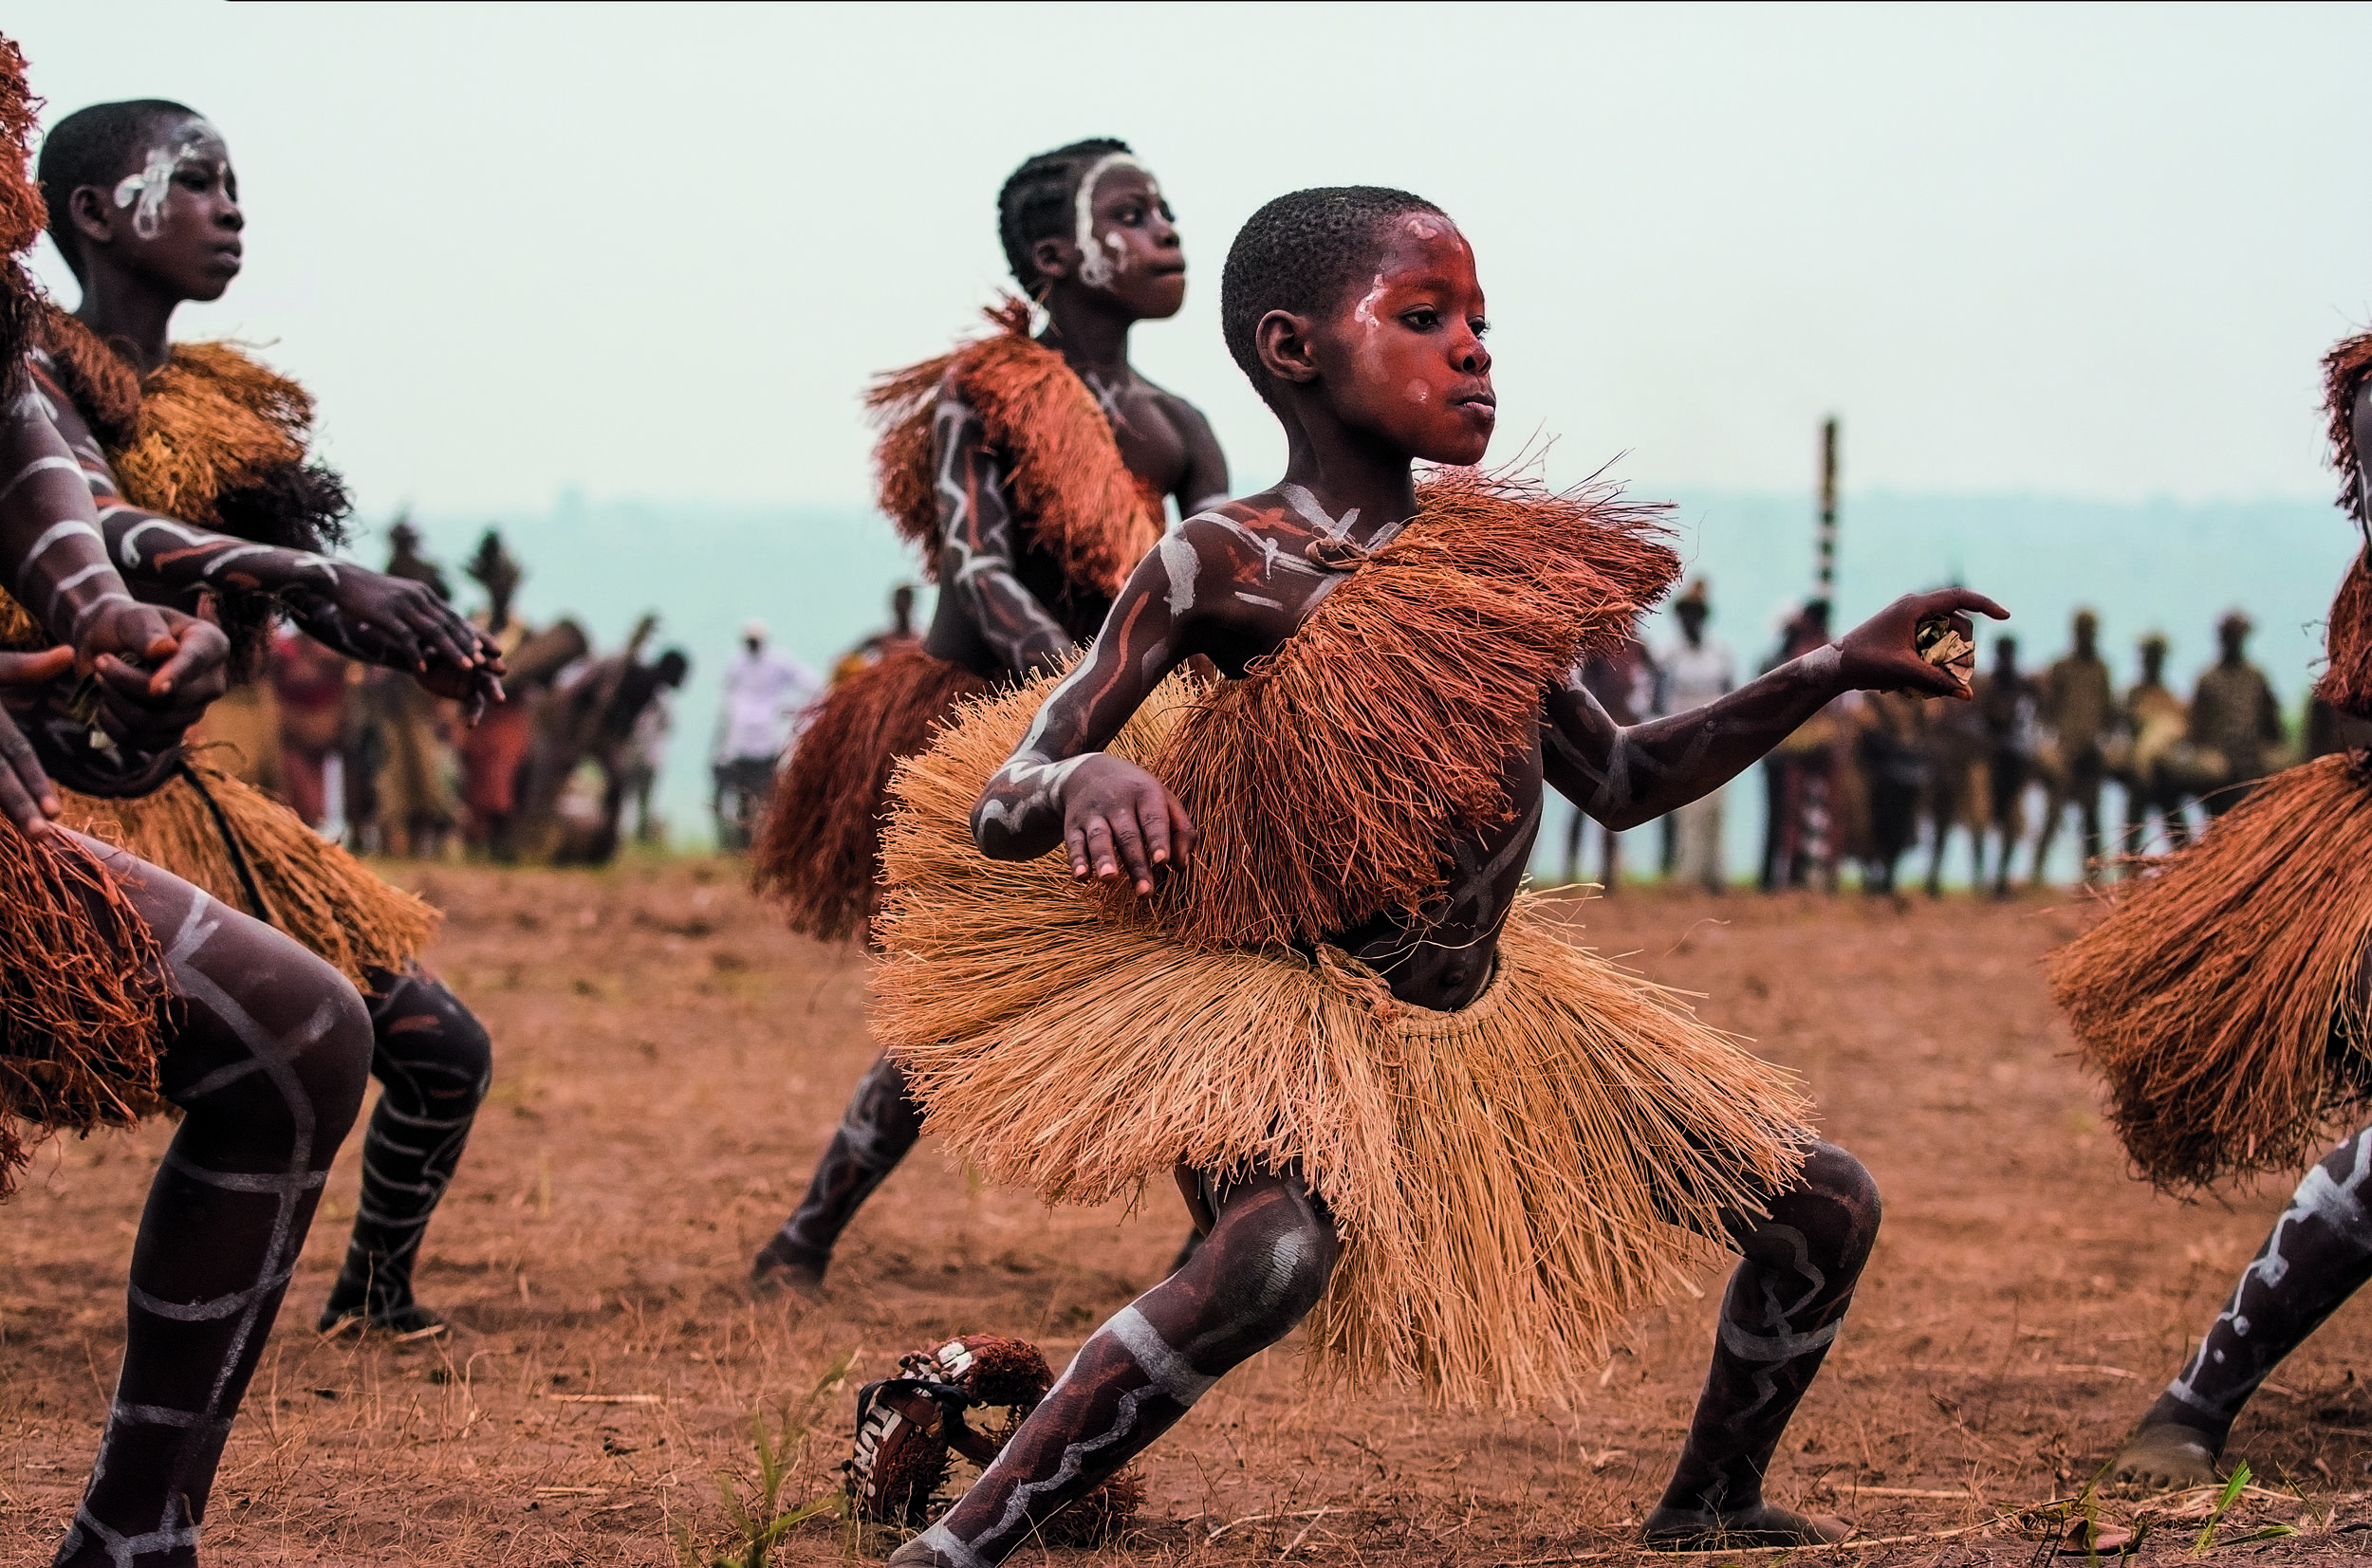 Young female initiates, decorated with chalk and ocher, perform dances that they have learned during their initiation process. © African Twilight: The Vanishing Cultures and Ceremonies of the African Continent by Carol Beckwith and Angela Fisher, Rizzoli, 2018.